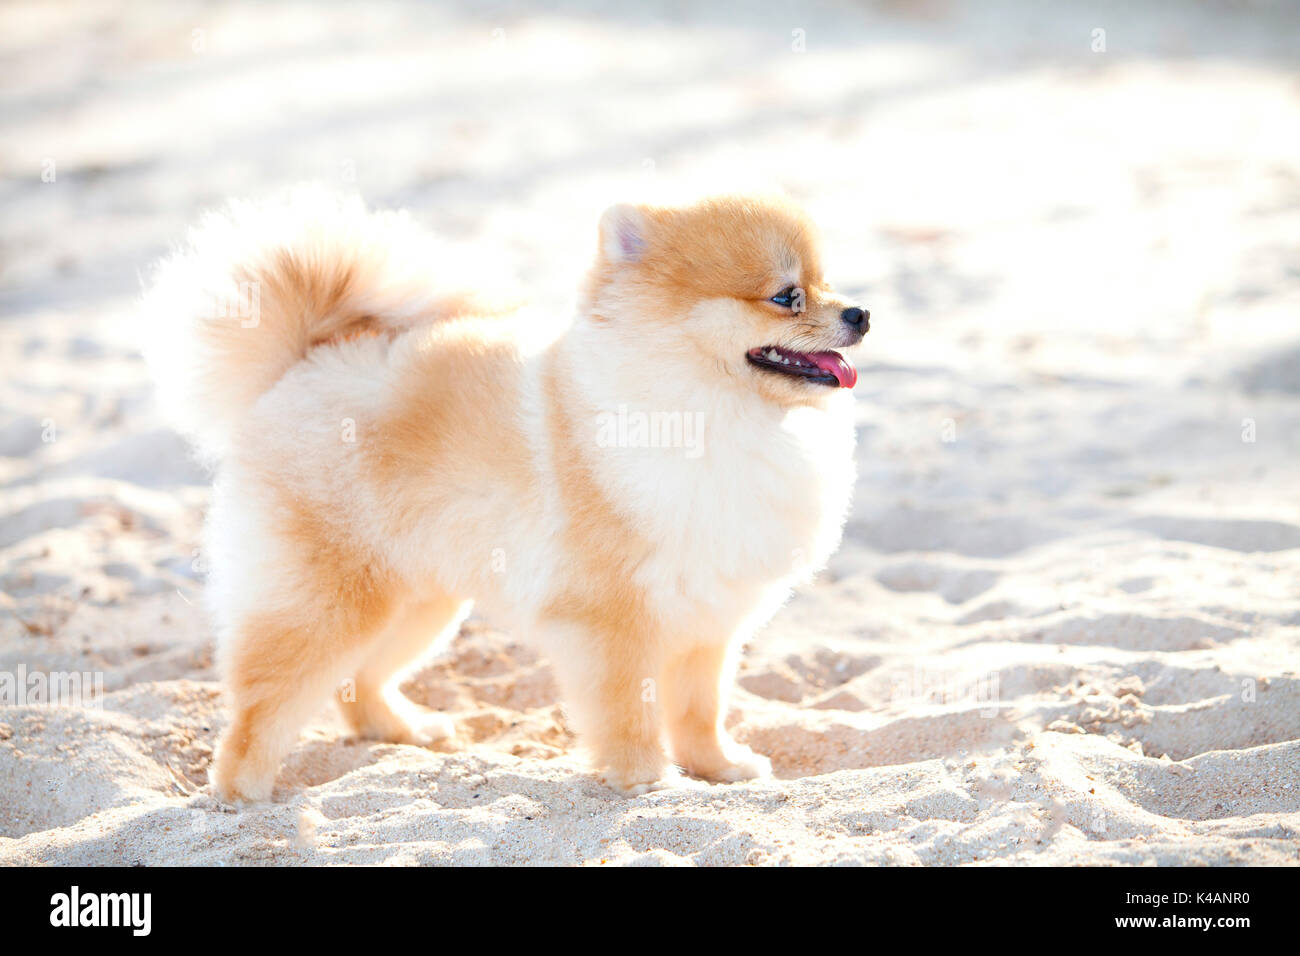 Pomeranian Dog On The White Sands Has It Has White And Brown Color